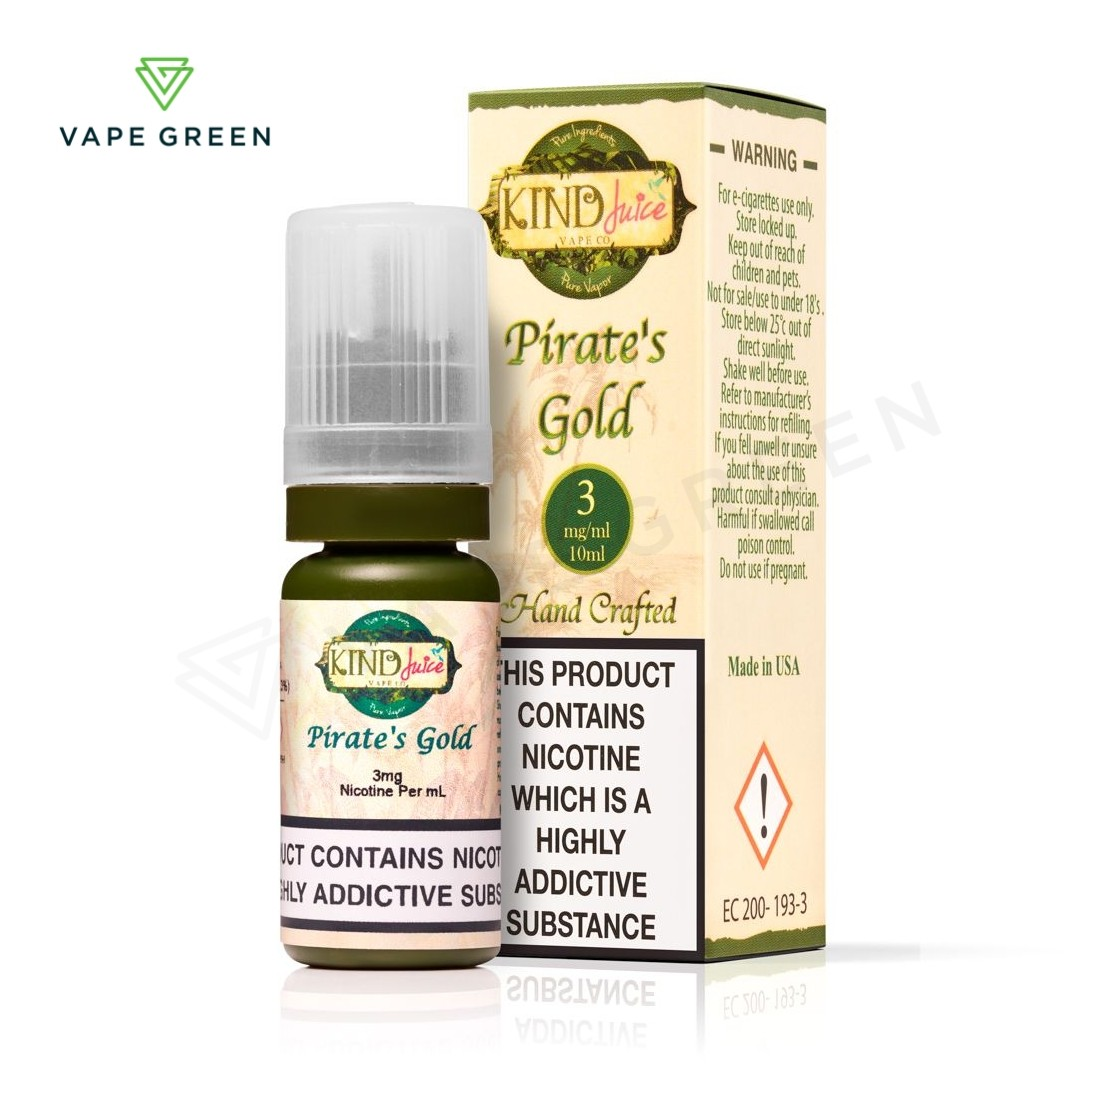 Pirate's Gold E-Liquid by Kind Juice